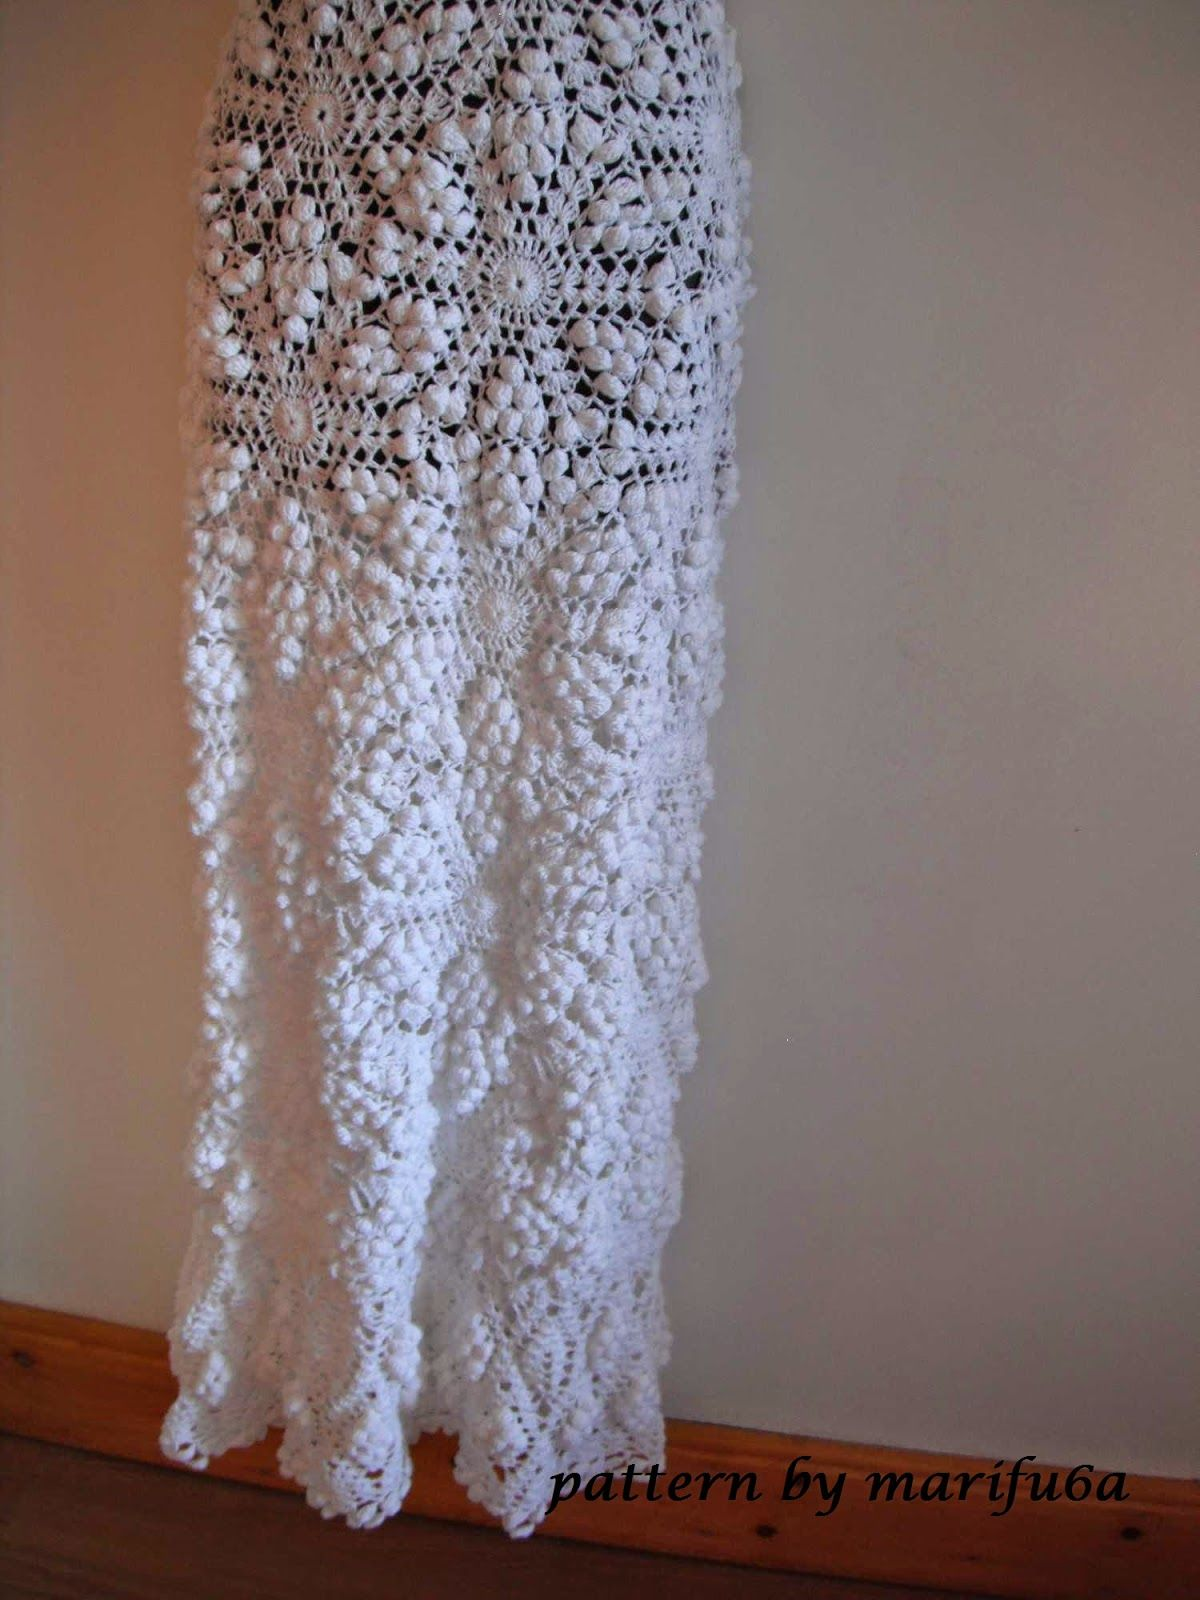 Free crochet patterns and video tutorials  HOW TO CROCHET WEDDING DRESS  PATTERN TUTORIAL e3dc5abad821